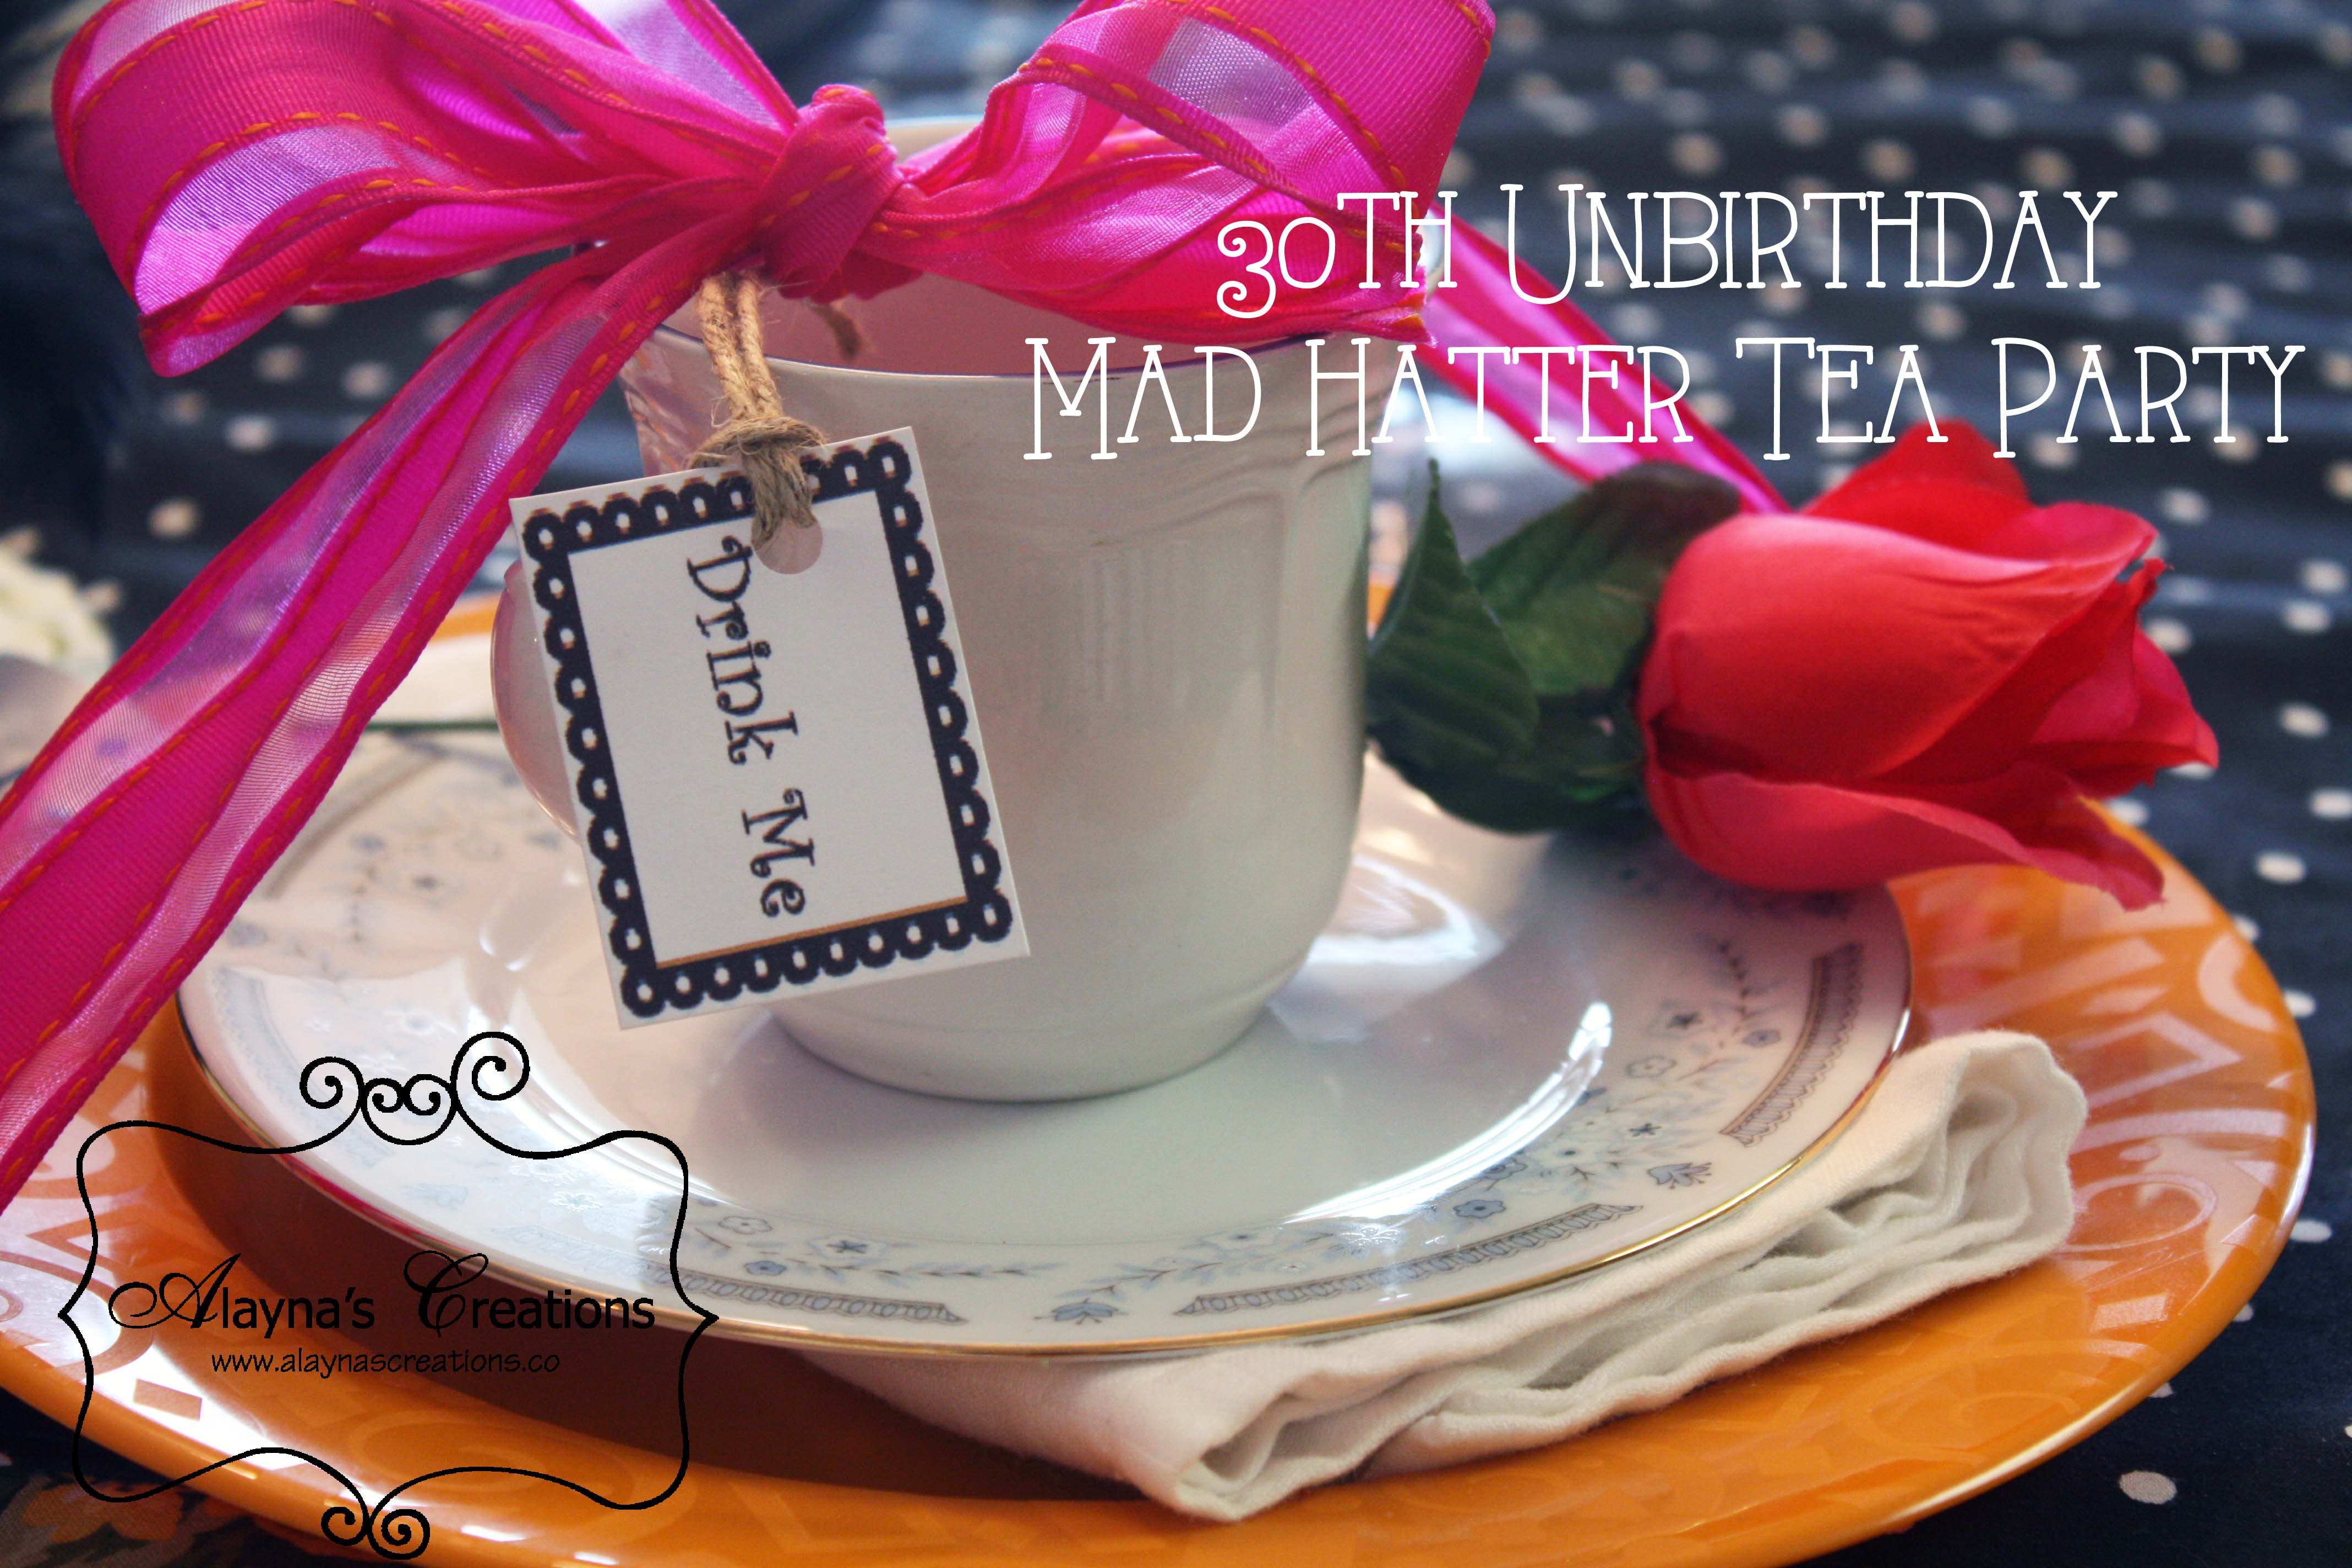 30th birthday un birthday mad hatter tea party diy home decor and alice in wonderland mad hatter tea party place setting izmirmasajfo Images